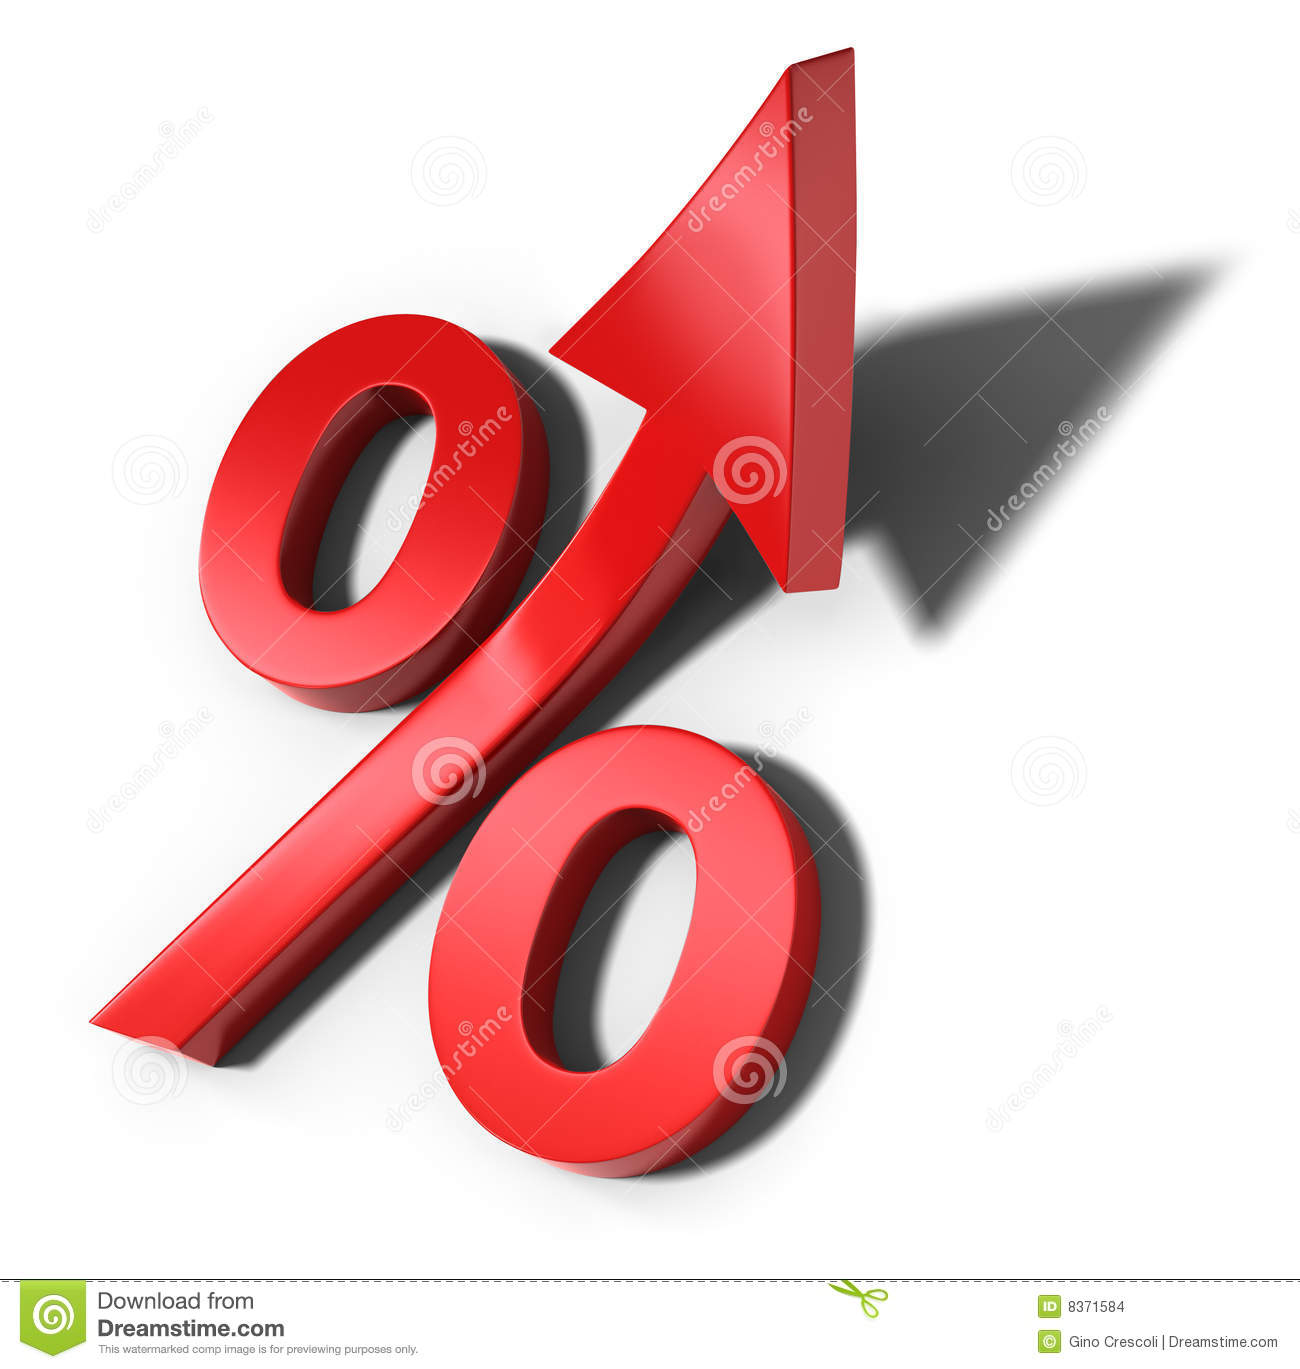 Red percent sign with upward arrow and shadow (3d illustration).